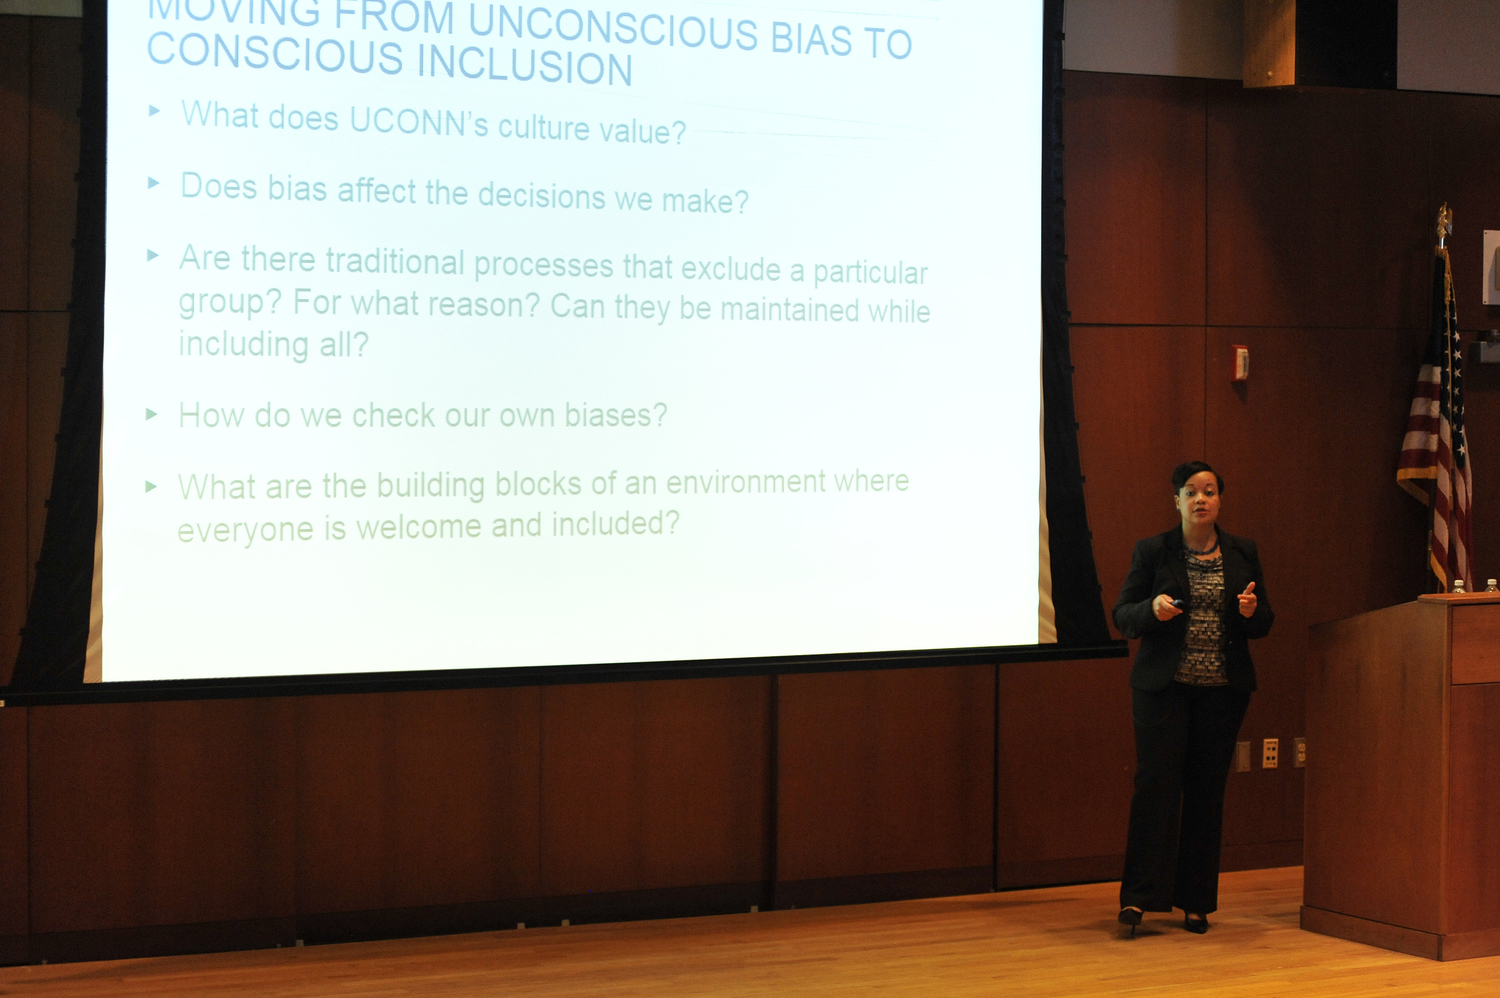 Joelle Murchison, currently vice president of enterprise diversity and inclusion at Travelers Insurance Company, speaks during her presentation for Chief Diversity Officer in the Thomas J. Dodd Research Center's Konover Auditorium in Storrs, Connecticut on Monday, Feb. 29, 2016. Murchison official hiring was announced at the Board of Trustees meeting on Wednesday, March 30, 2016.(Jason Jiang/The Daily Campus)